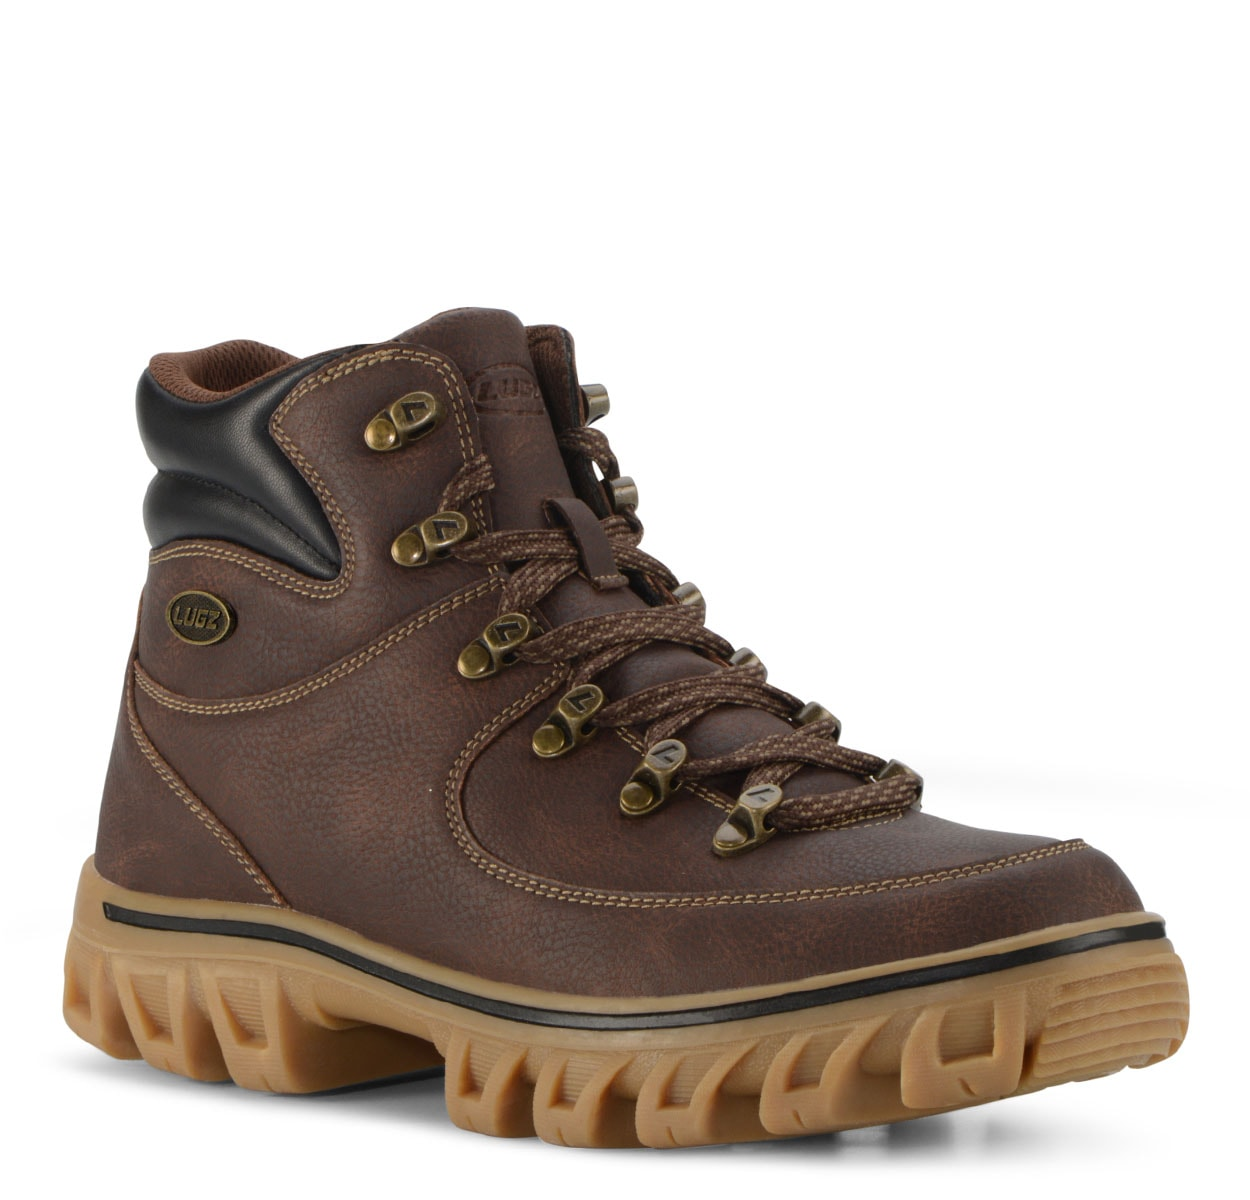 Men's Colorado Chukka Boot (Choose Your Color: BROWN/BLACK/GUM, Choose Your Size: 8.0)